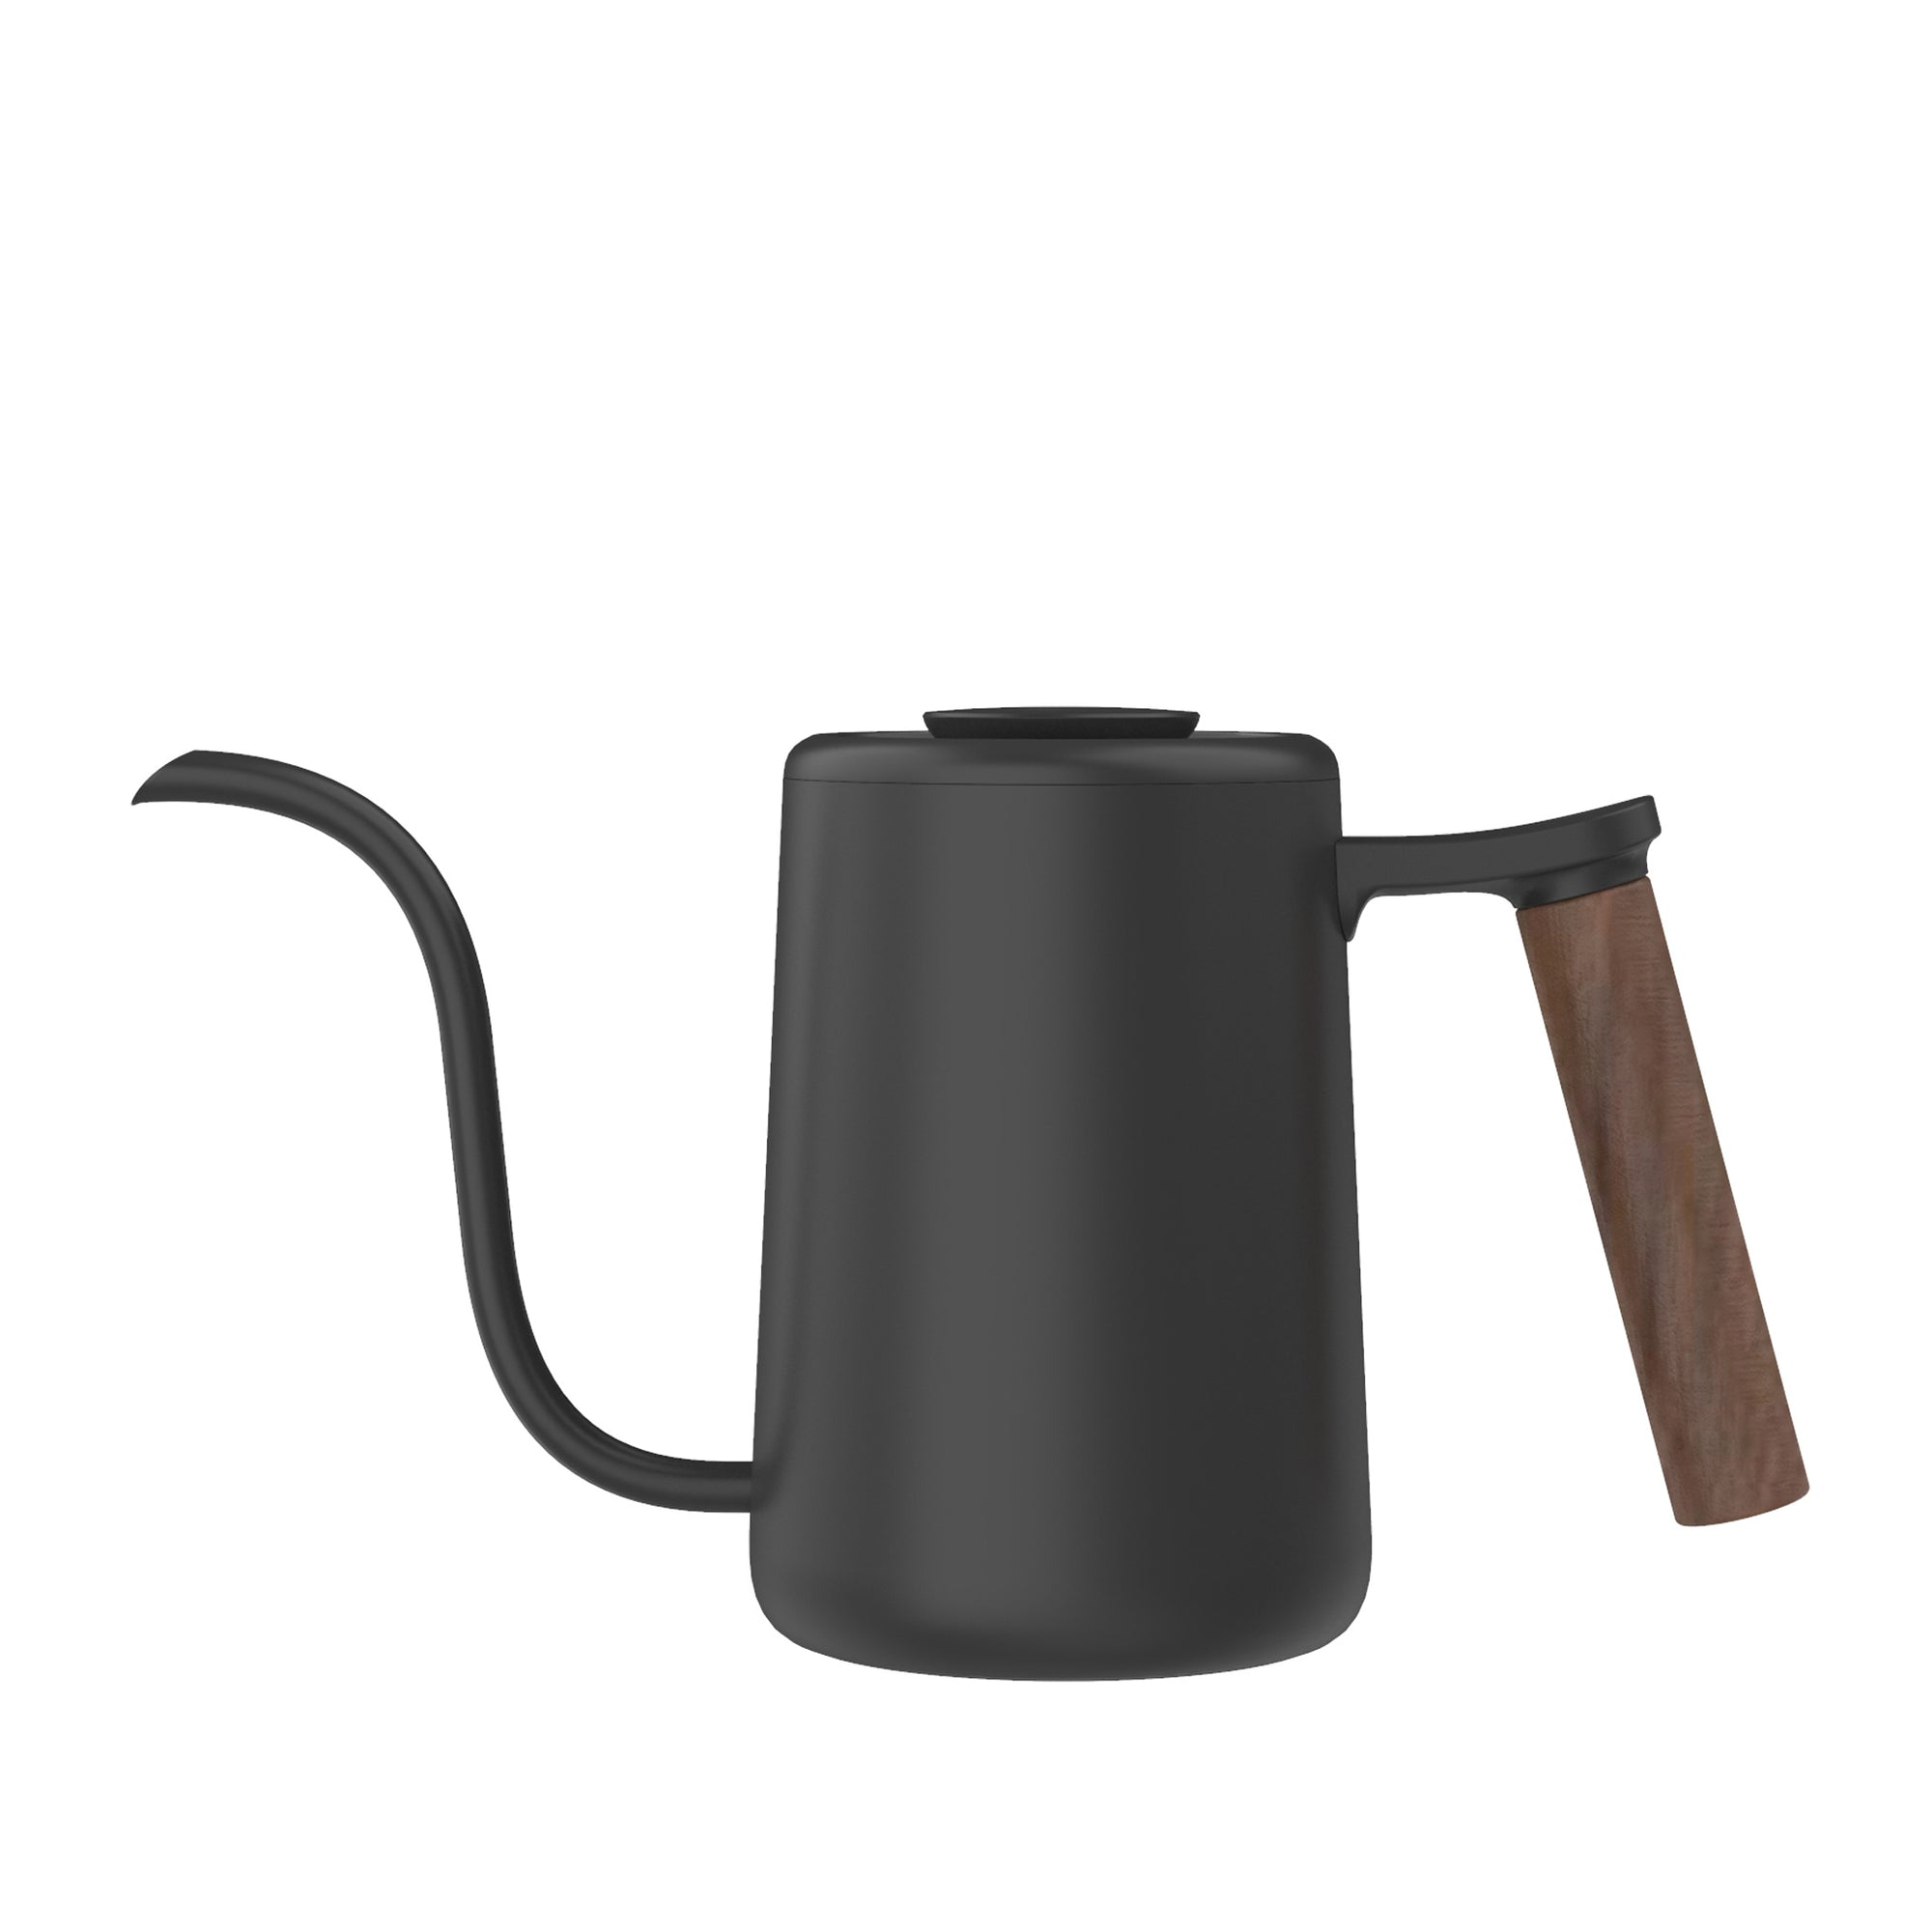 Youth Kettle Black 700ml - Timemore - Espresso Gear